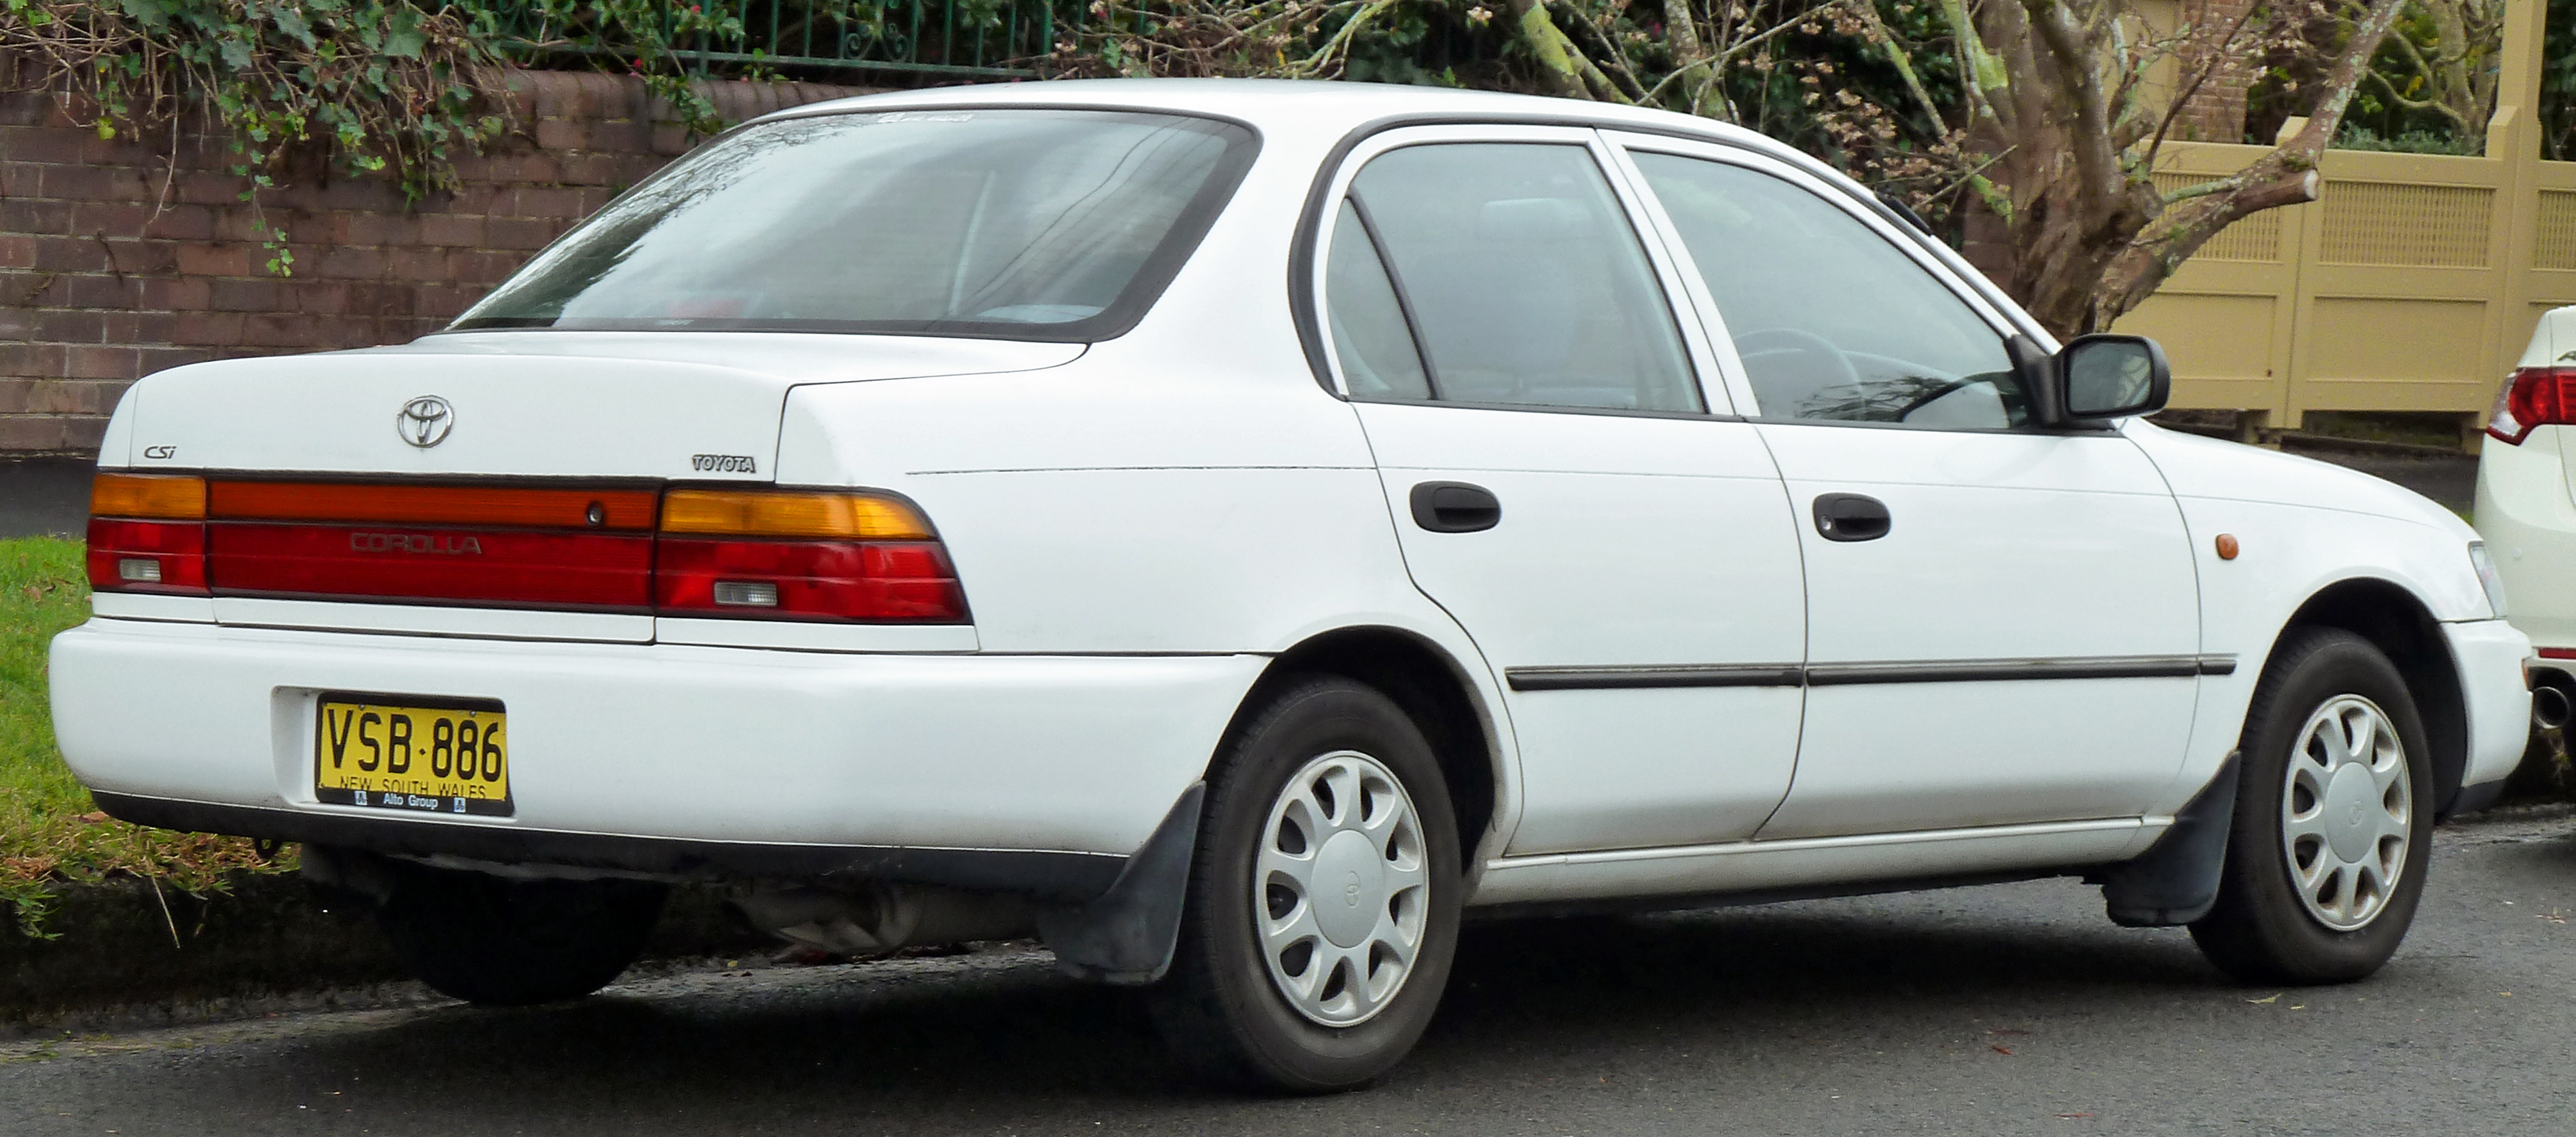 1999 Toyota Corolla Information And Photos Momentcar